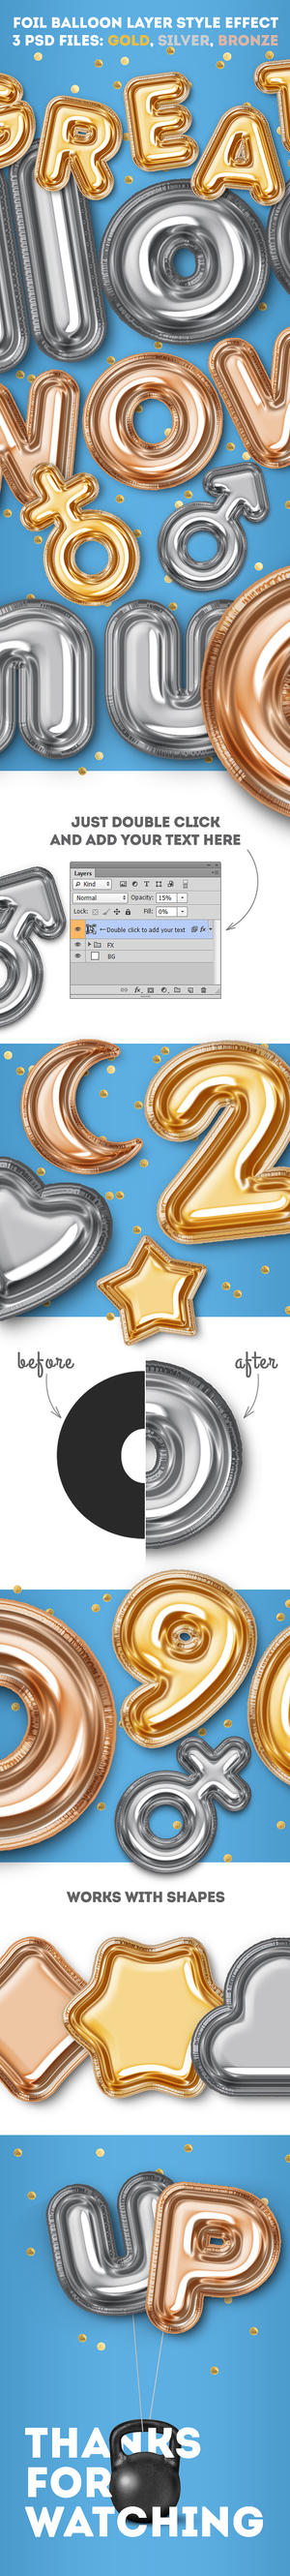 Foil Balloon Layer Style Effect by ottoson